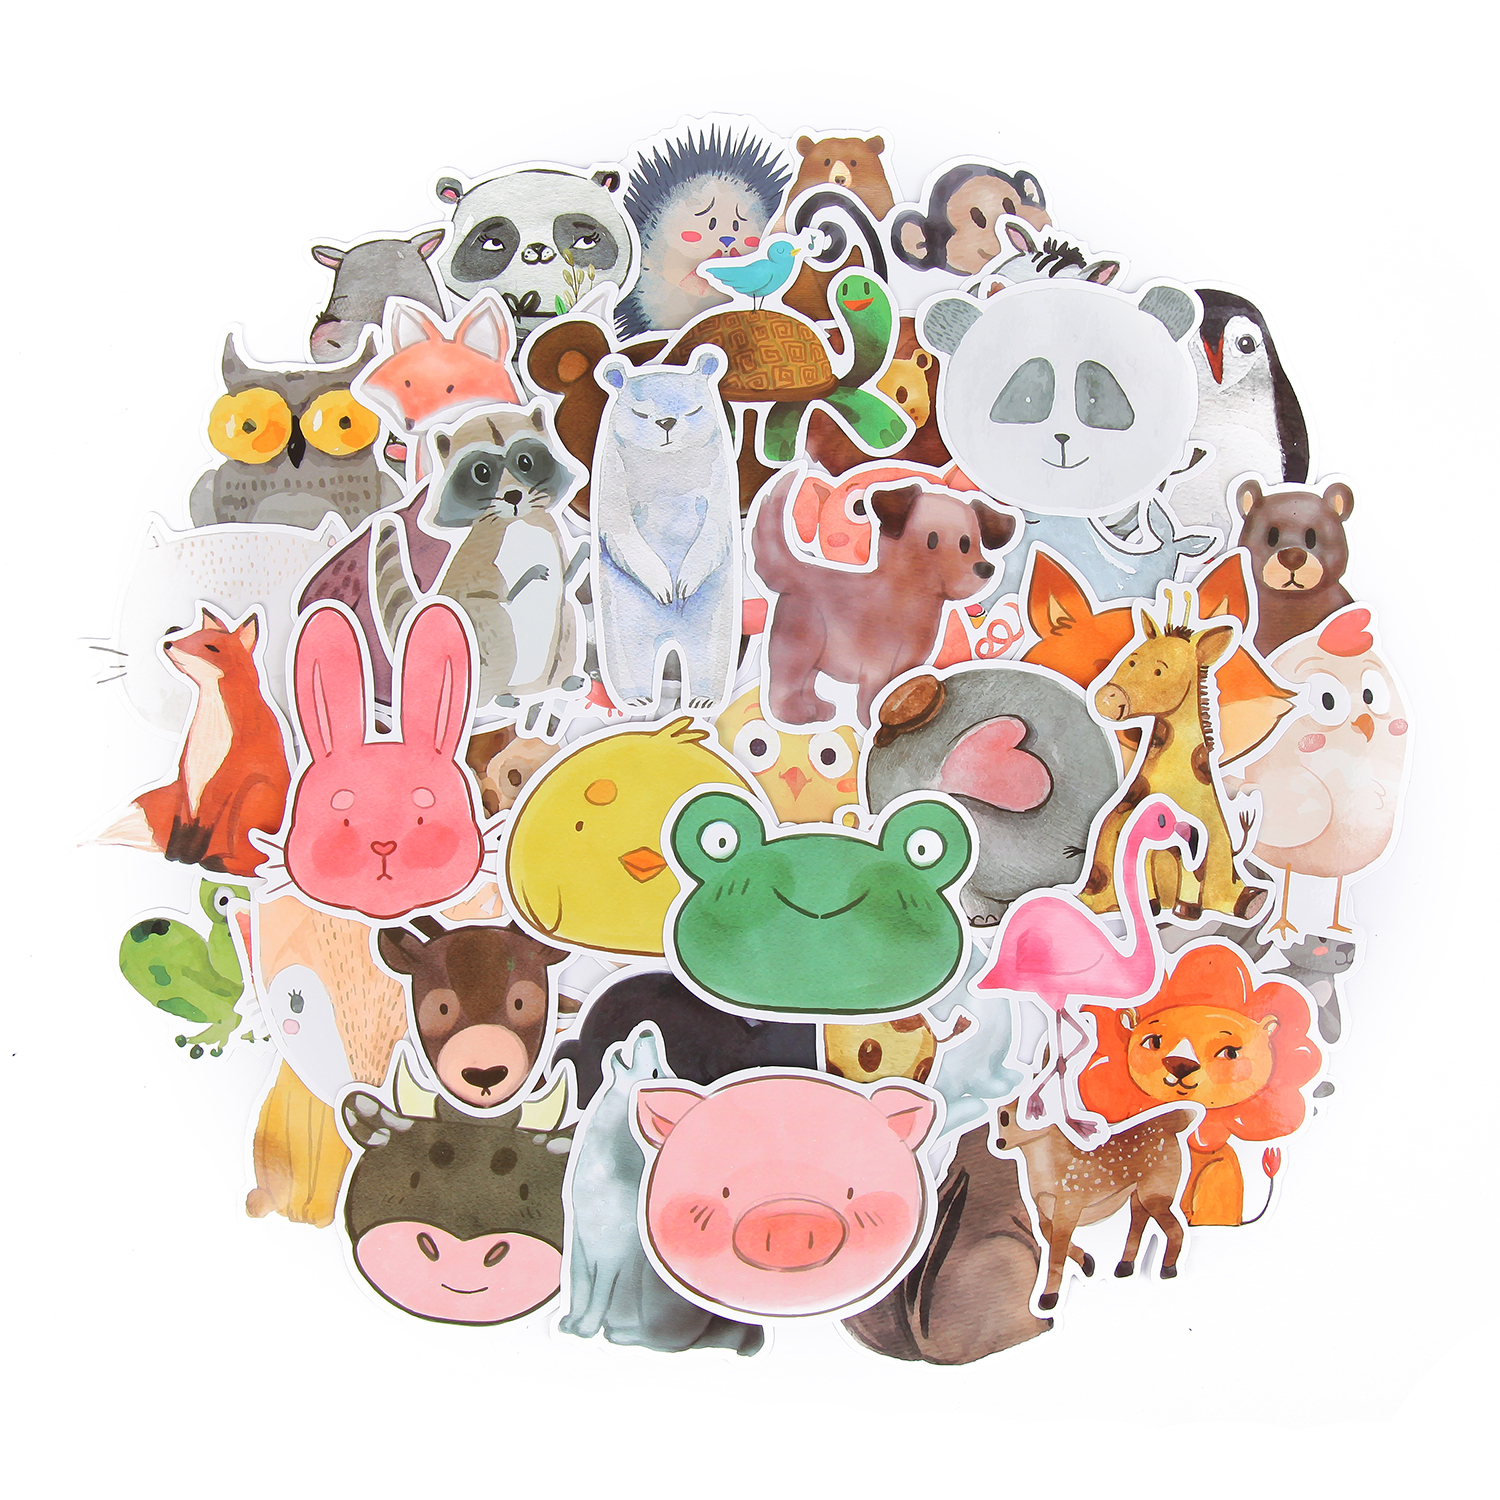 td-zw-50pcs-lot-waterproof-super-cute-cartoon-animal-stickers-for-car-laptop-phone-pad-bicycle-decal-kids-gift-cat-pig-dog